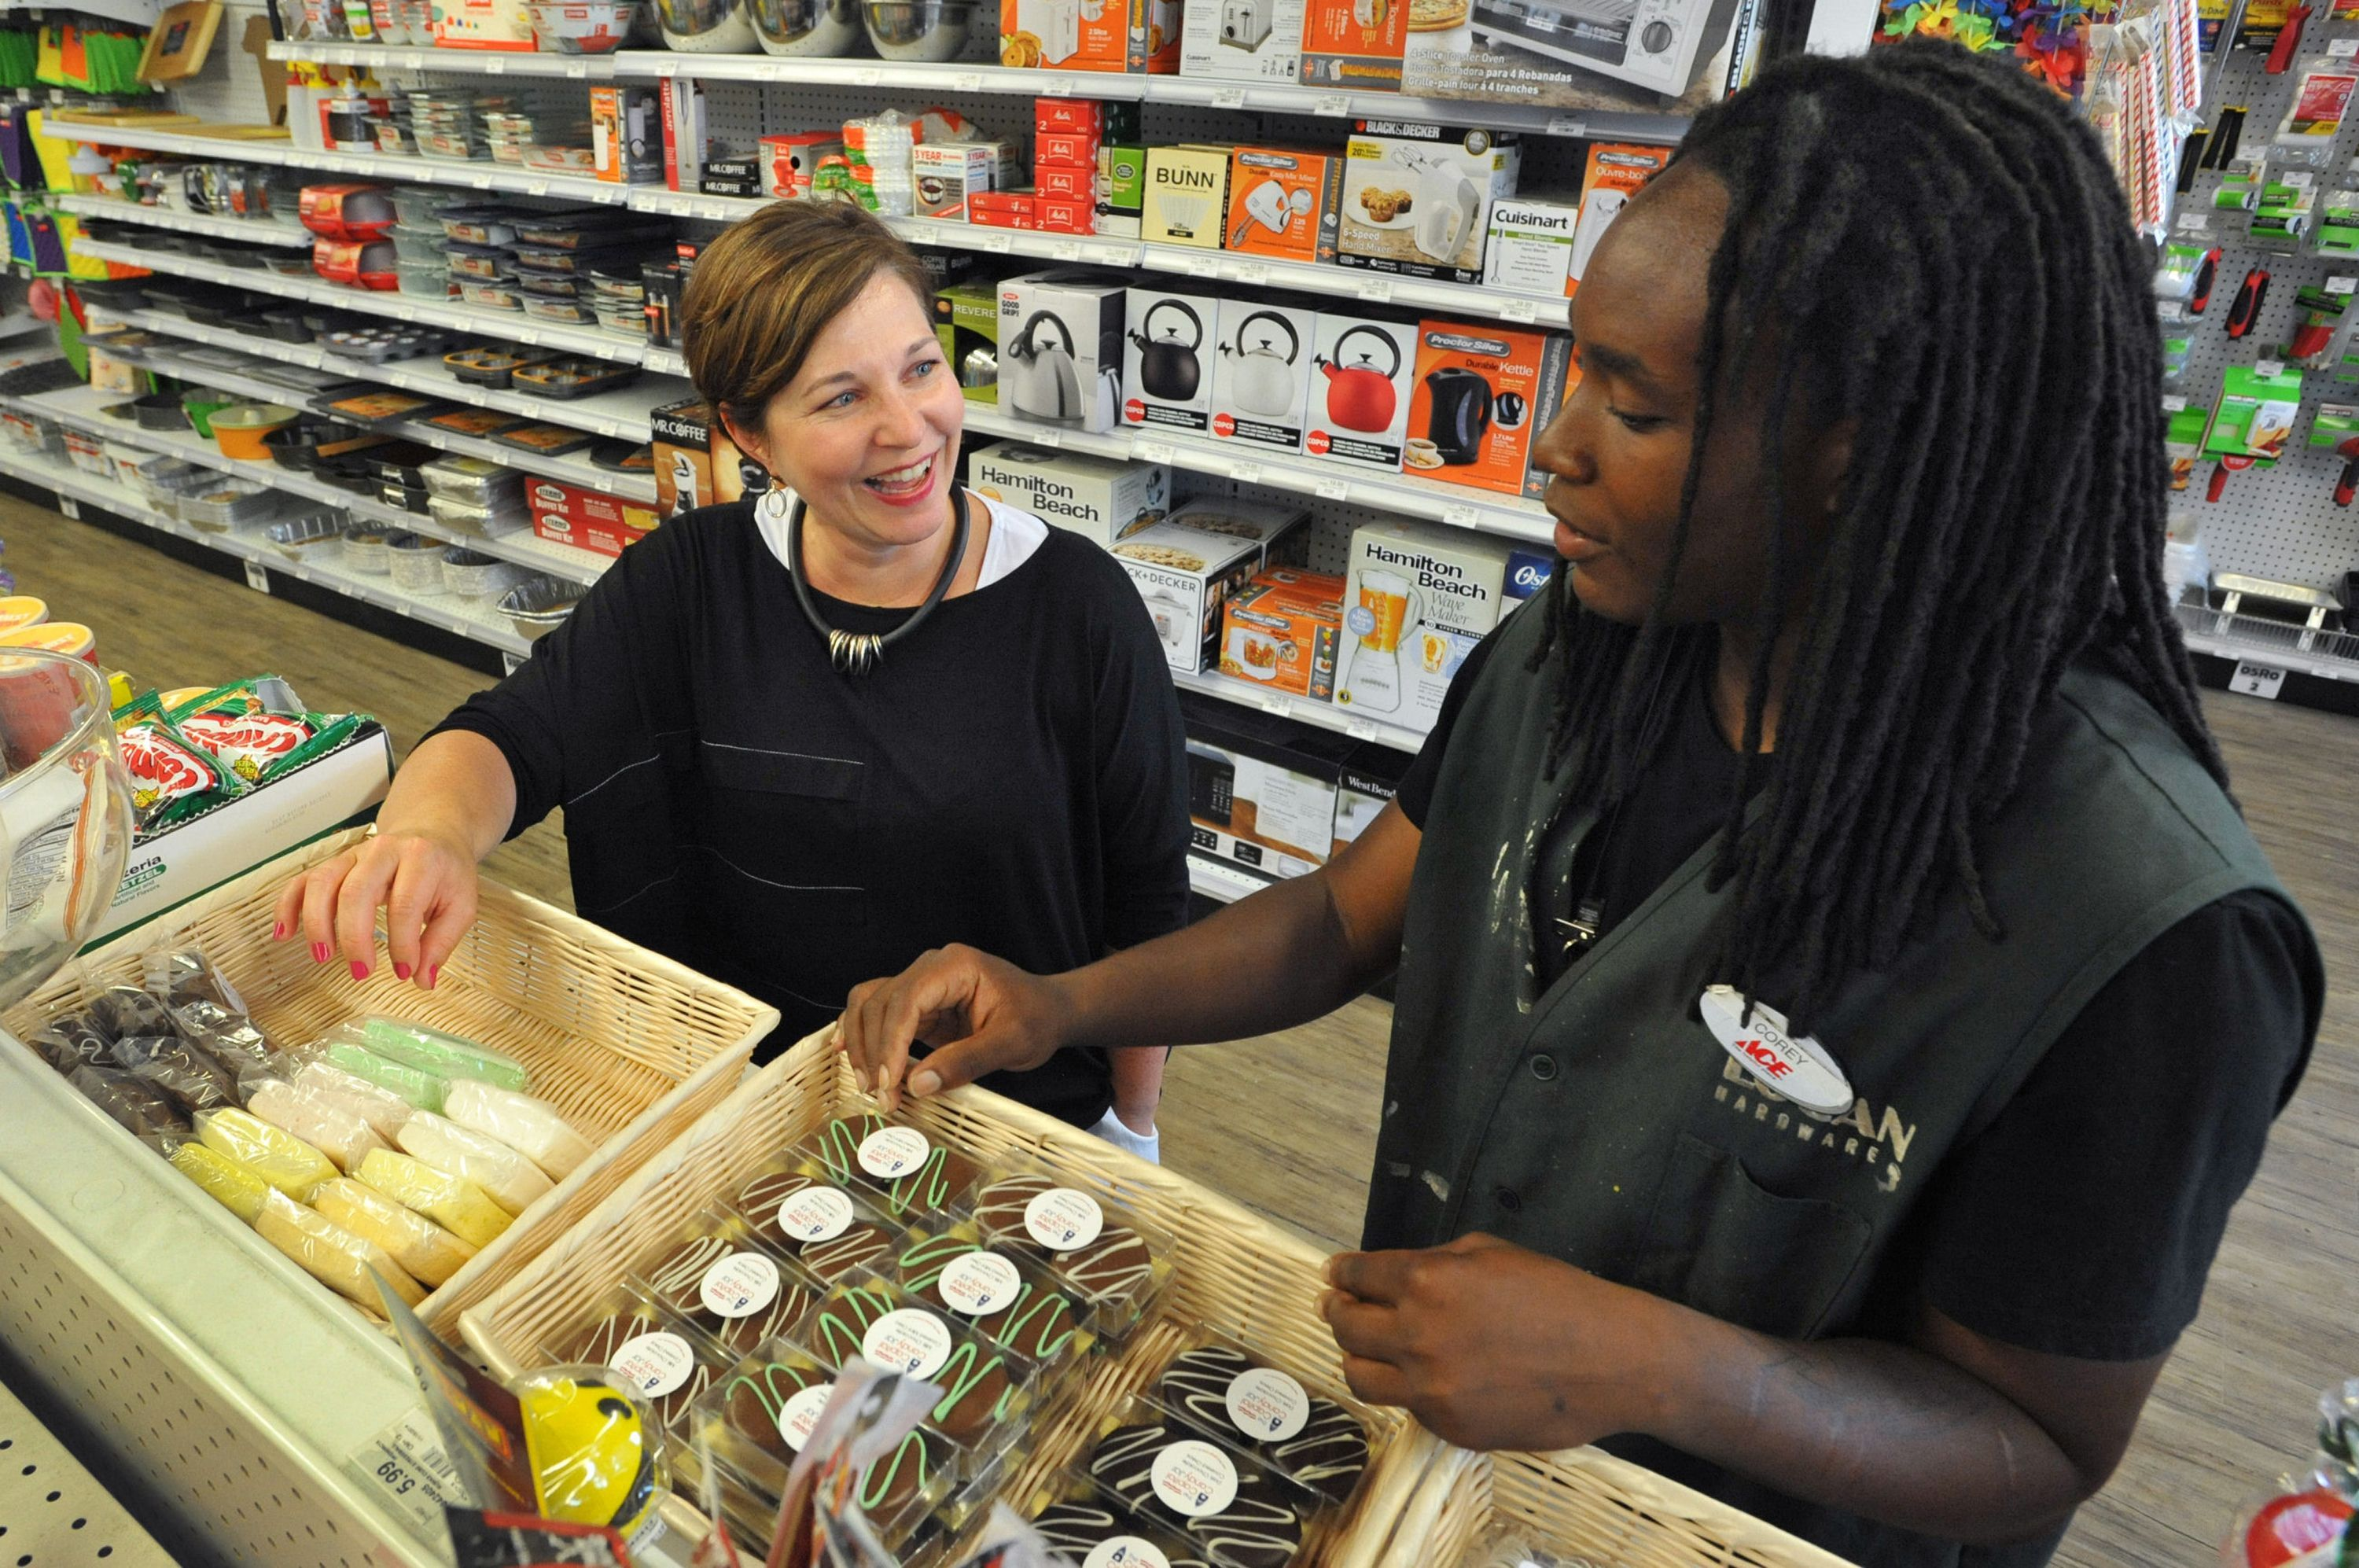 Newsela | With minimum wage rising, is America ready for $15-an-hour